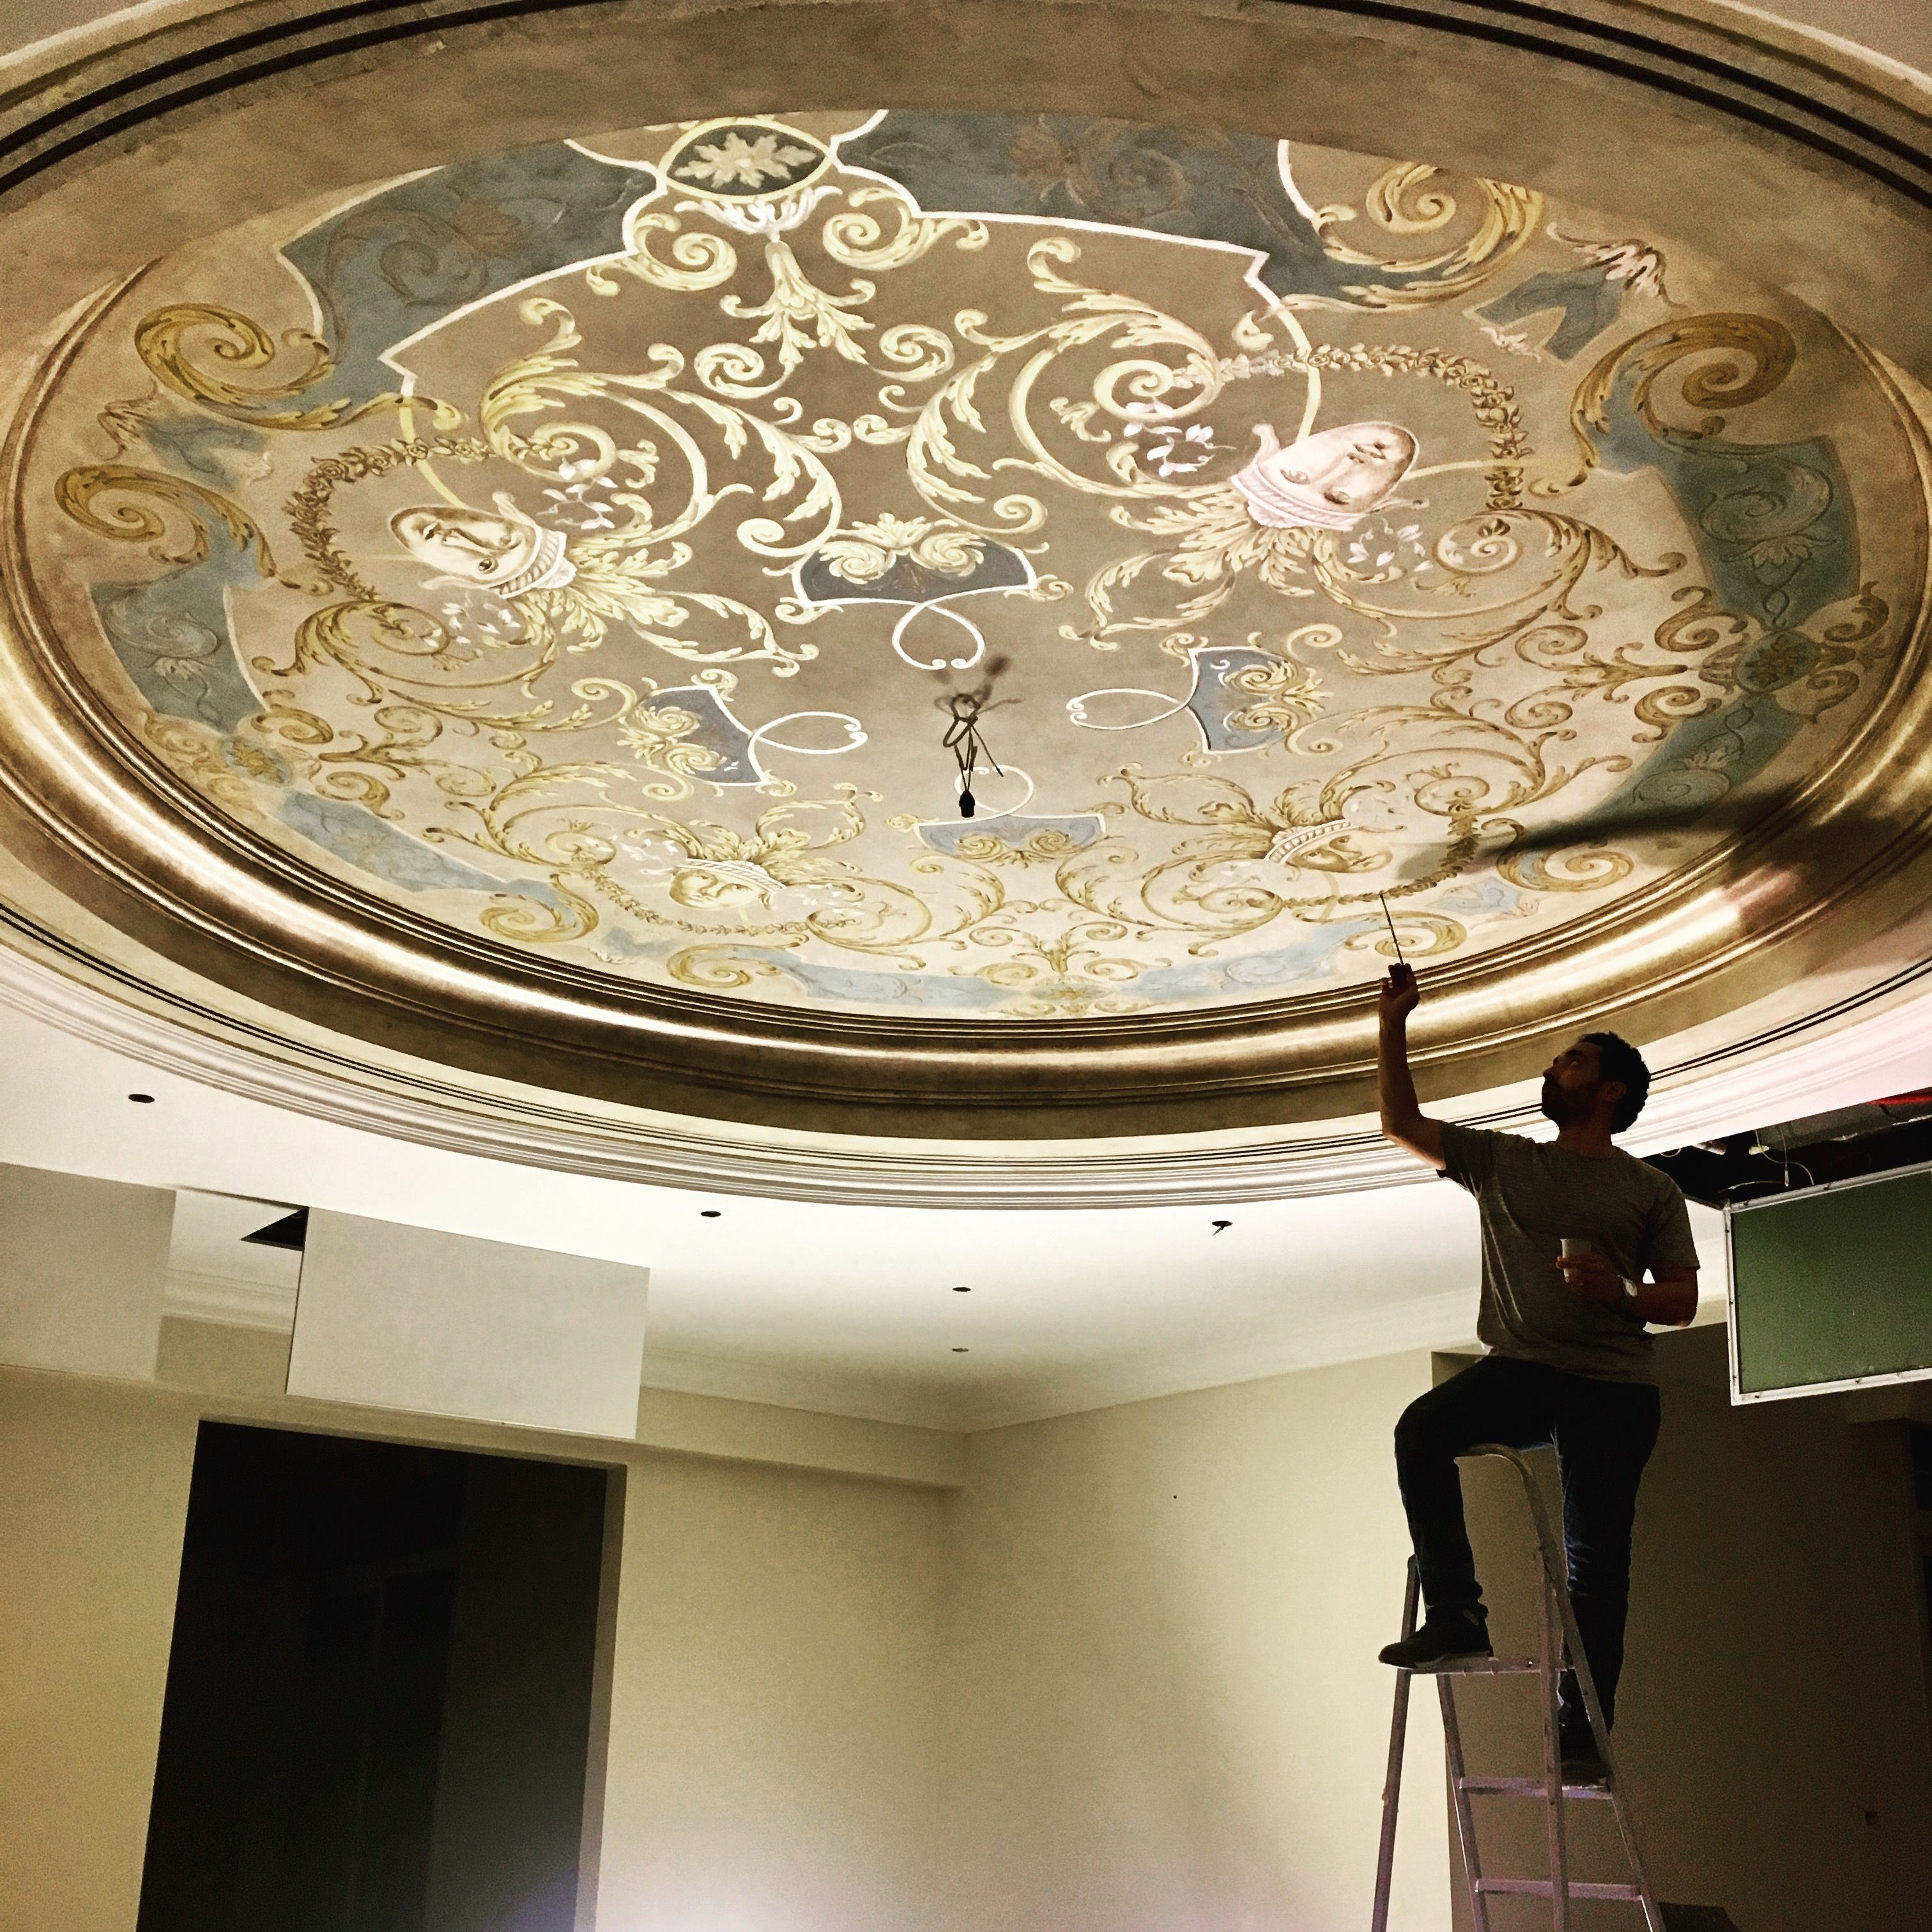 Pin by moustafa el ashry on cieling pinterest ceiling ceiling detail ceiling design gypsum ceiling baroque design molding ideas interior painting etched glass moldings palaces dailygadgetfo Image collections